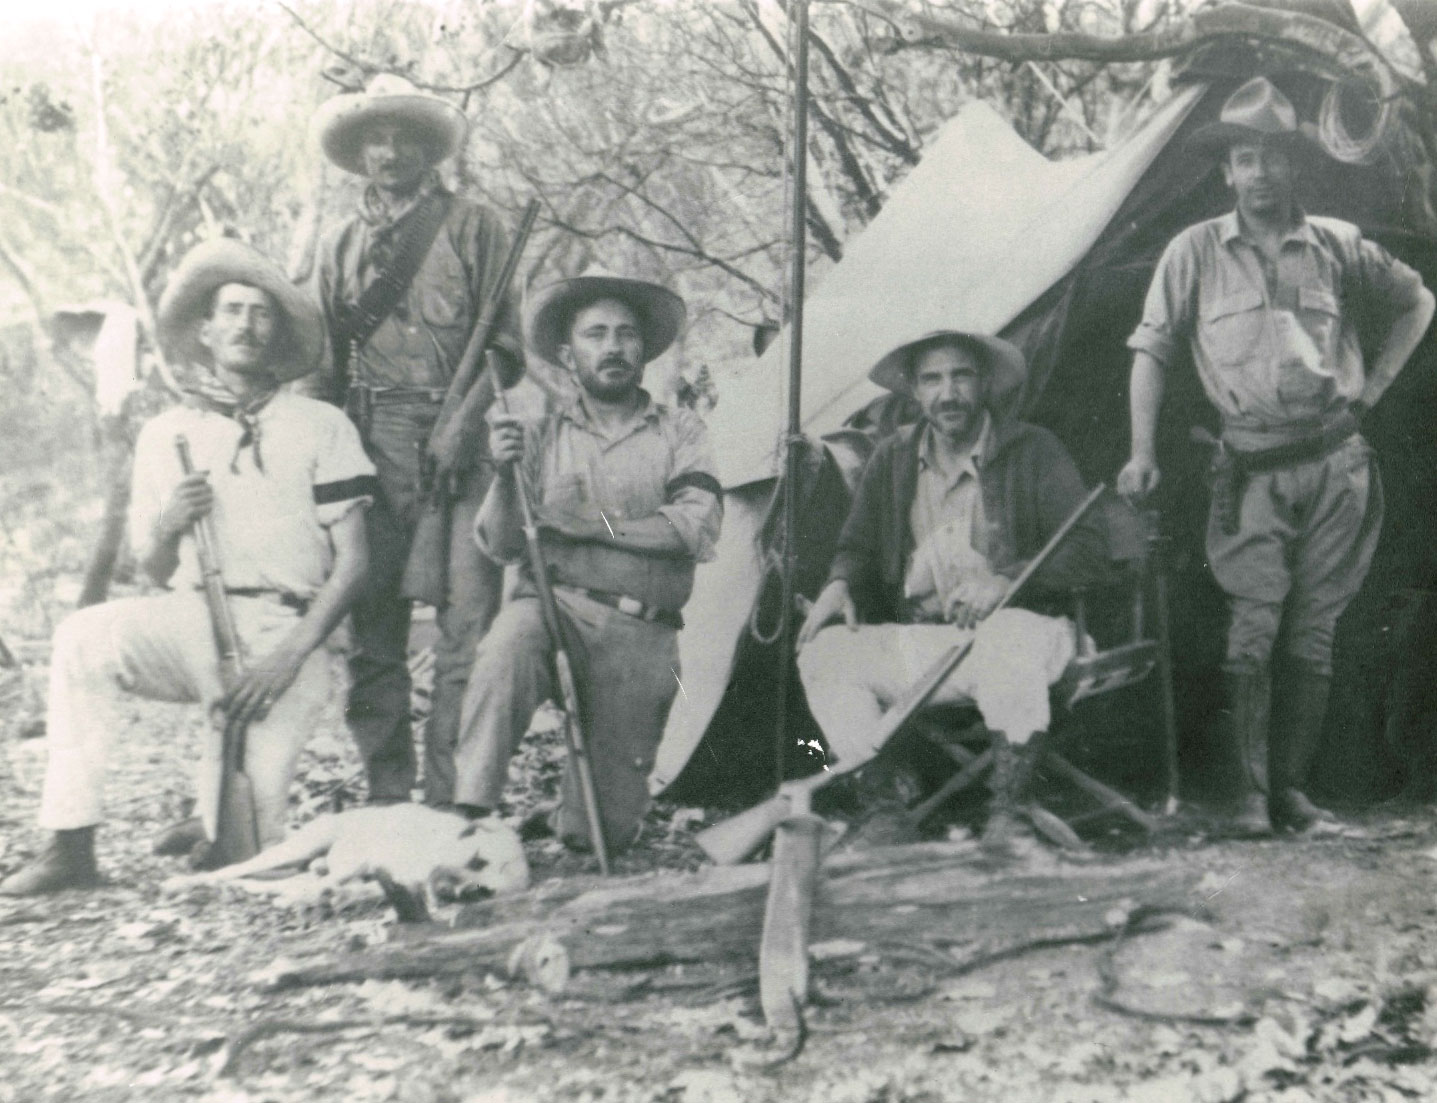 Chester Lamb (second from right) on a field trip in Baja California in the 1920s. Courtesy of the Lamb Family